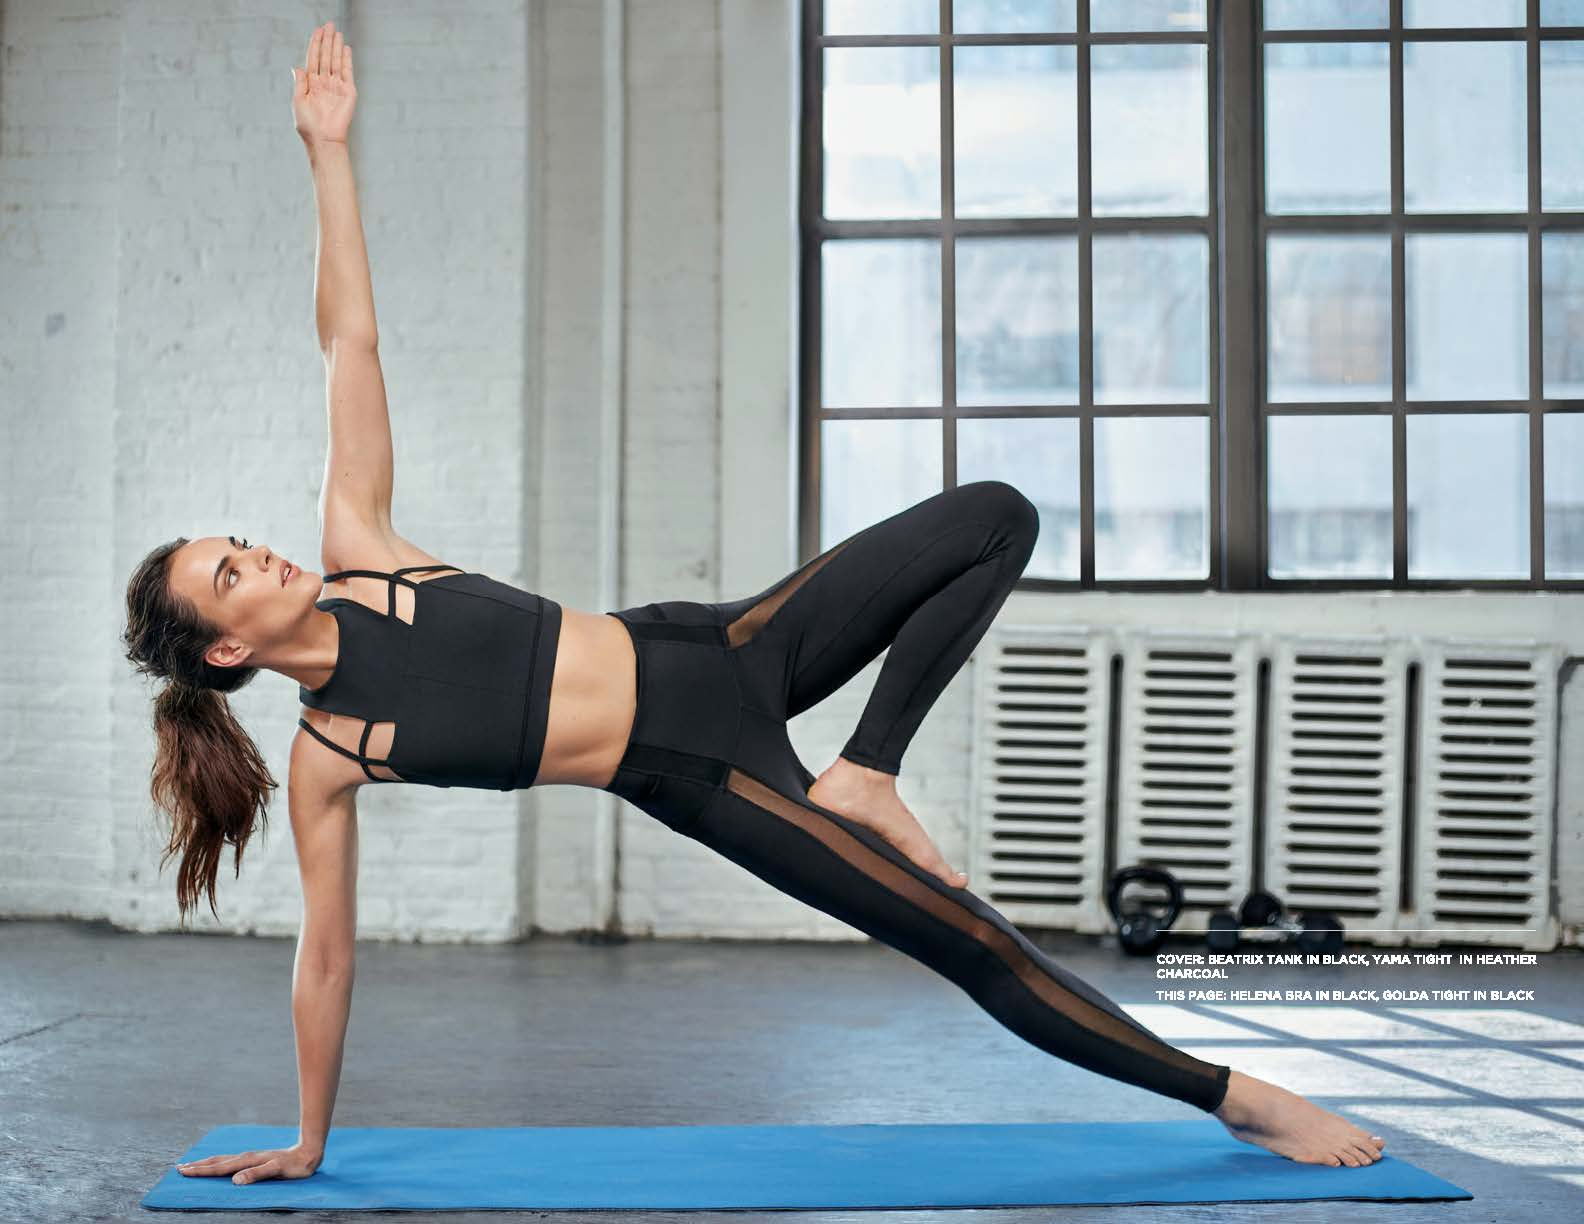 Yoga Pose on Mat with Helena Bra & Golda Tight Black Outfit by Karma Athletics